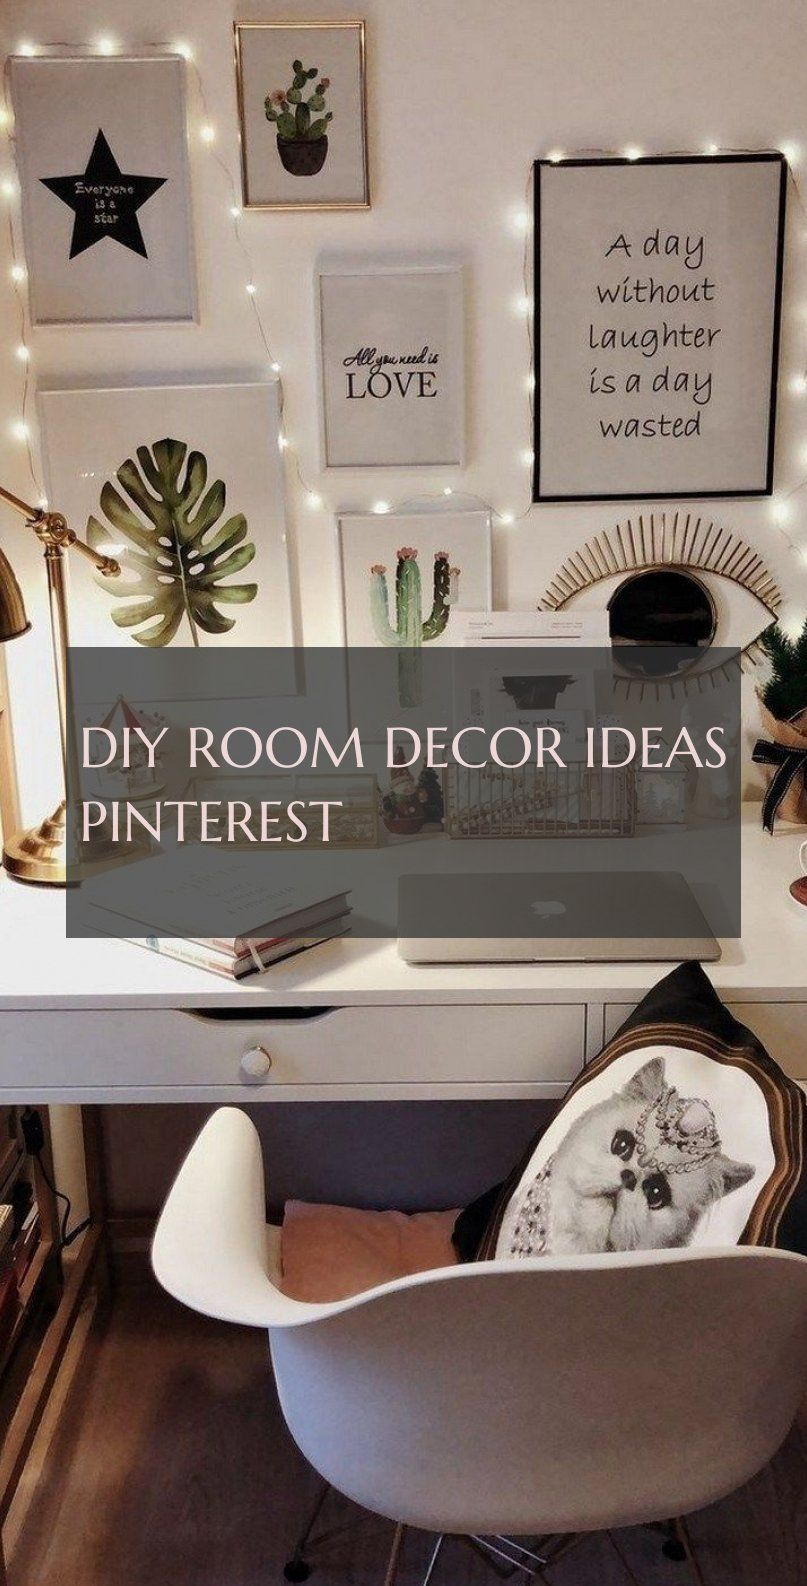 Pin On Room Decor